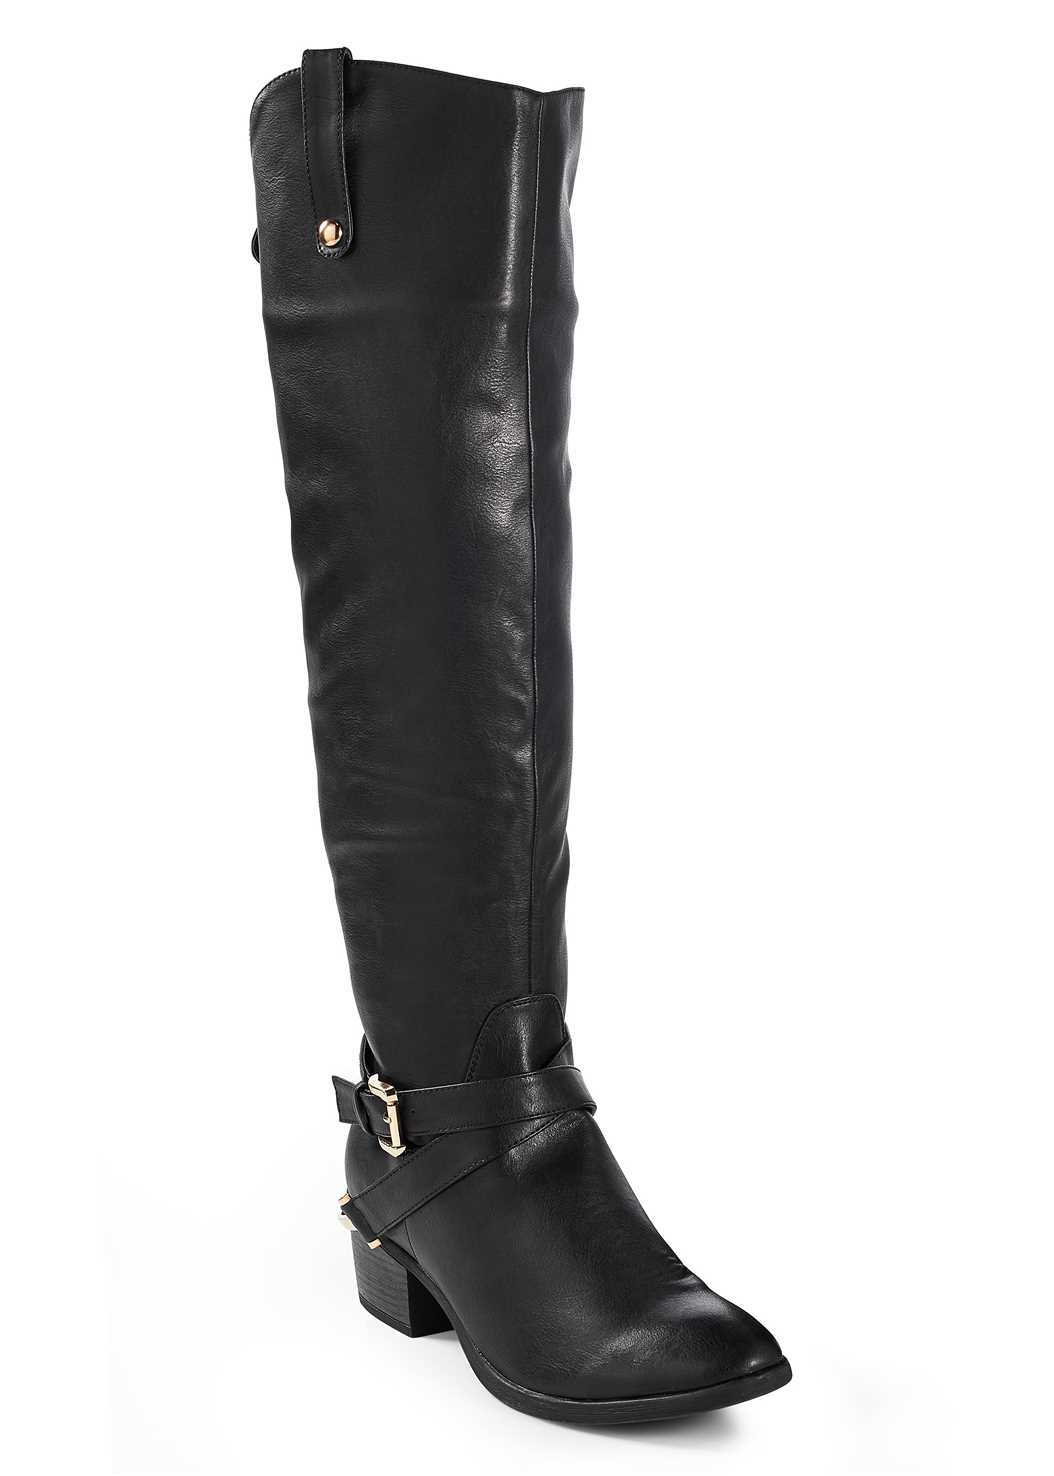 Buckle Riding Boots,Basic Cami Two Pack,Tab Button Detail Duster,Mid Rise Color Skinny Jeans